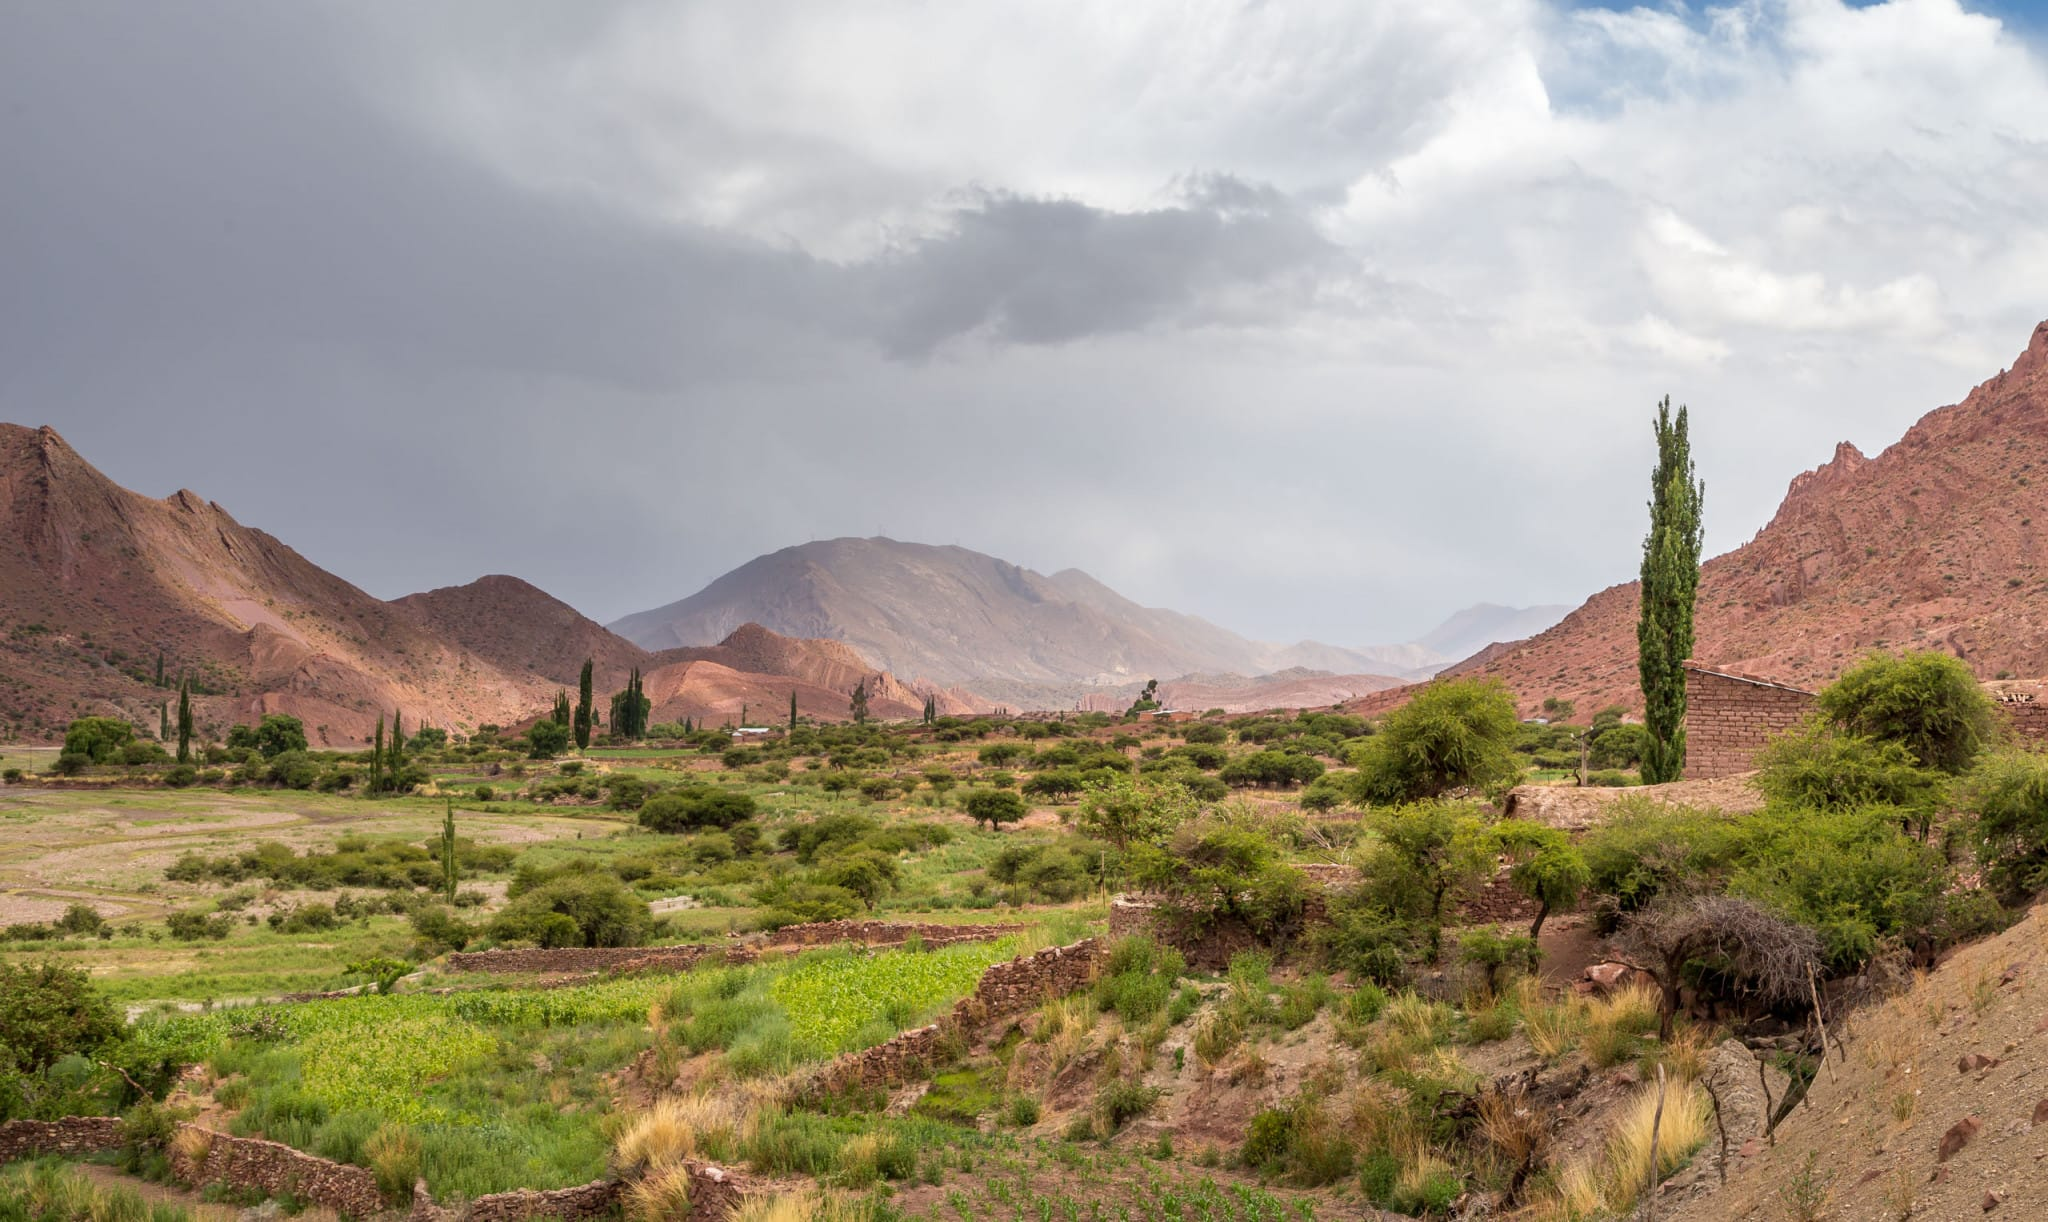 Altiplano Landscape - BOLIVIA - Amazing 10-day Bolivia itinerary to Sucre & the Altiplano